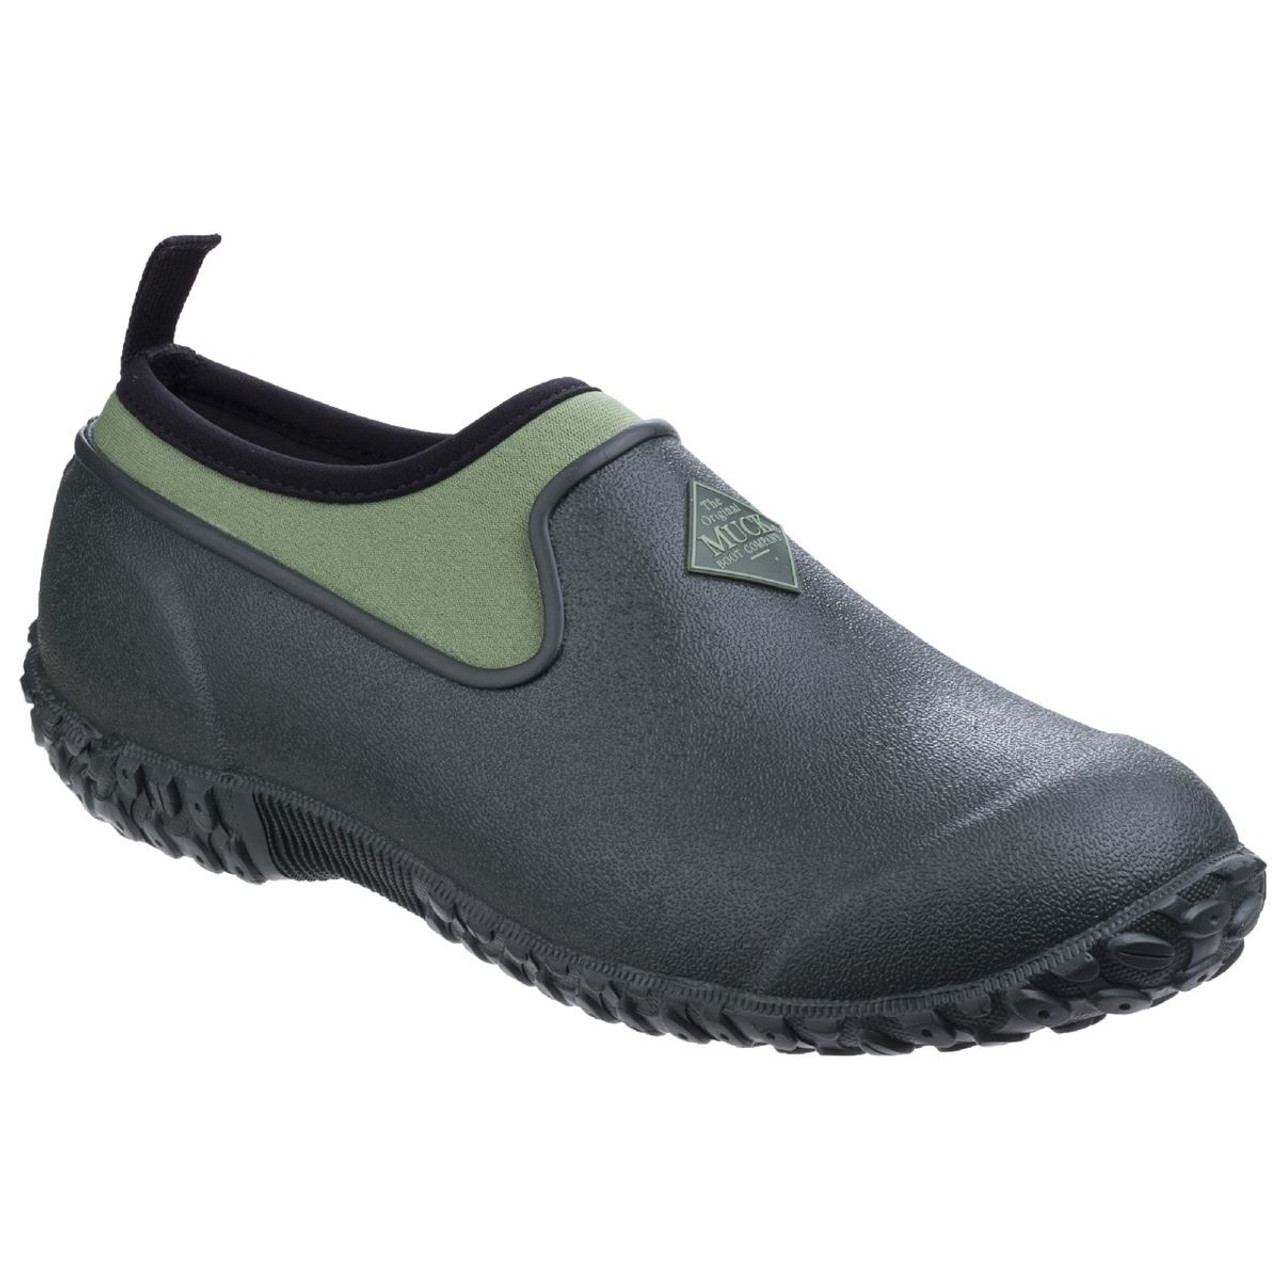 Muck Boot Womens Muckster II Low Shoes